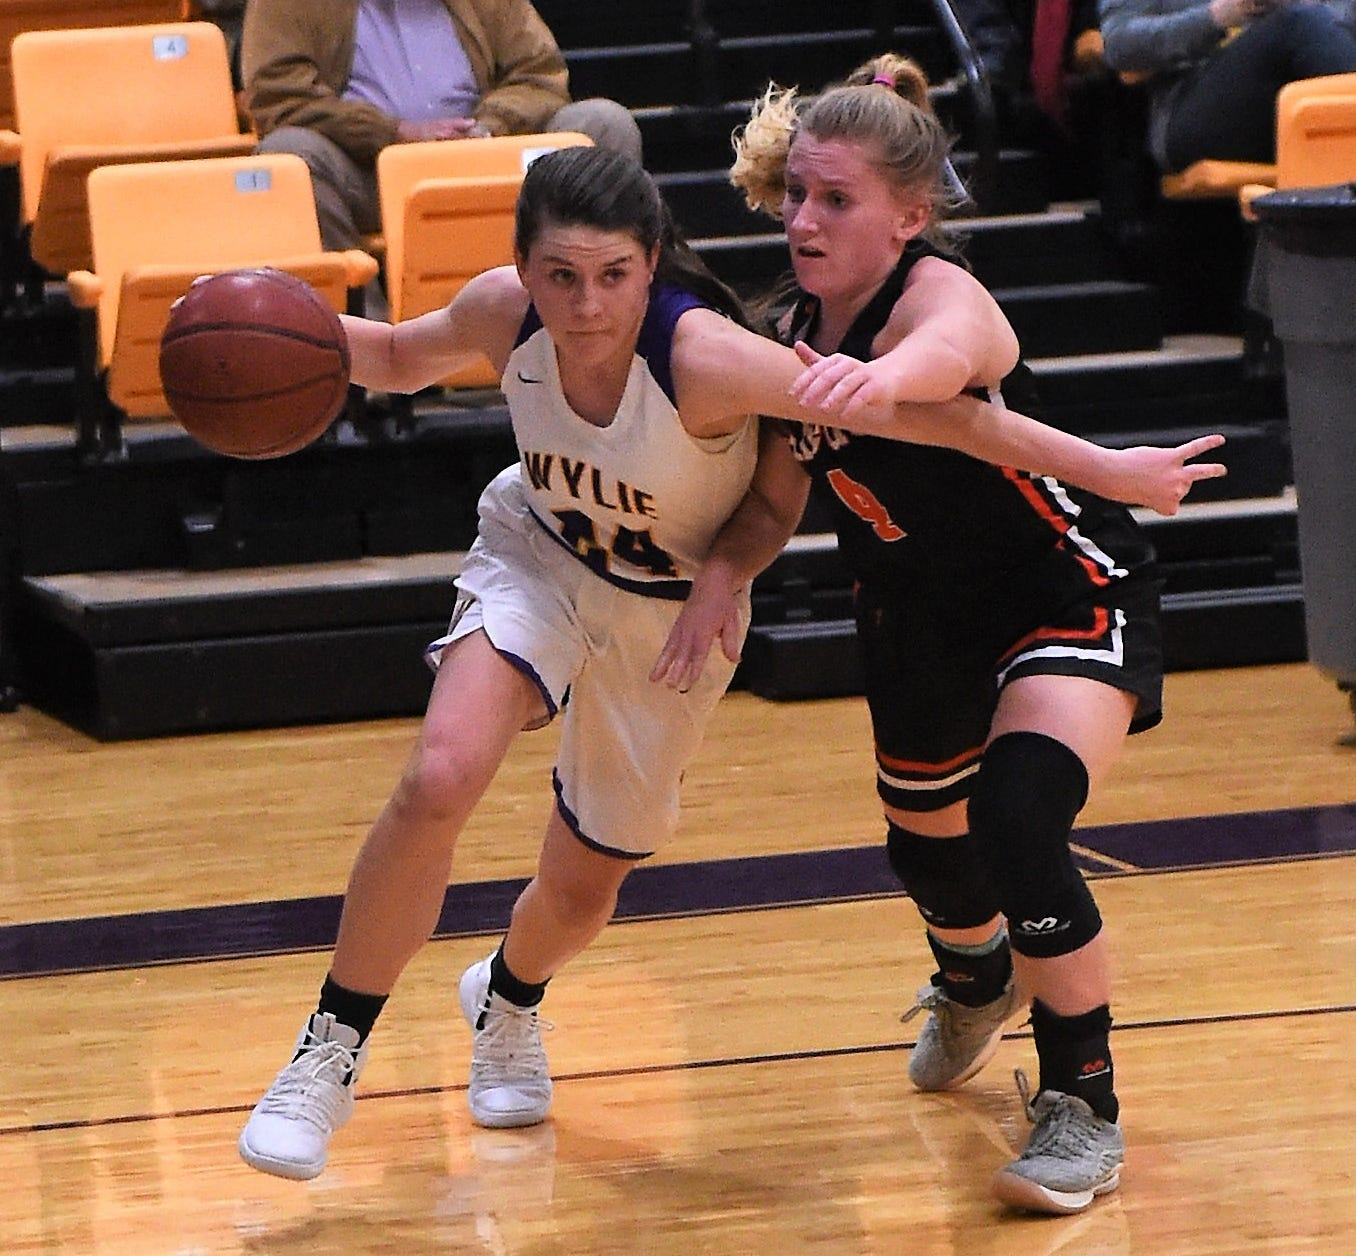 Wylie guard Mary Lovelace (24) drives past Aledo's Riley Sale (4) during Tuesday's District 4-5A contest at Bulldog Gym. Lovelace scored 15 points in the 51-47 overtime loss.